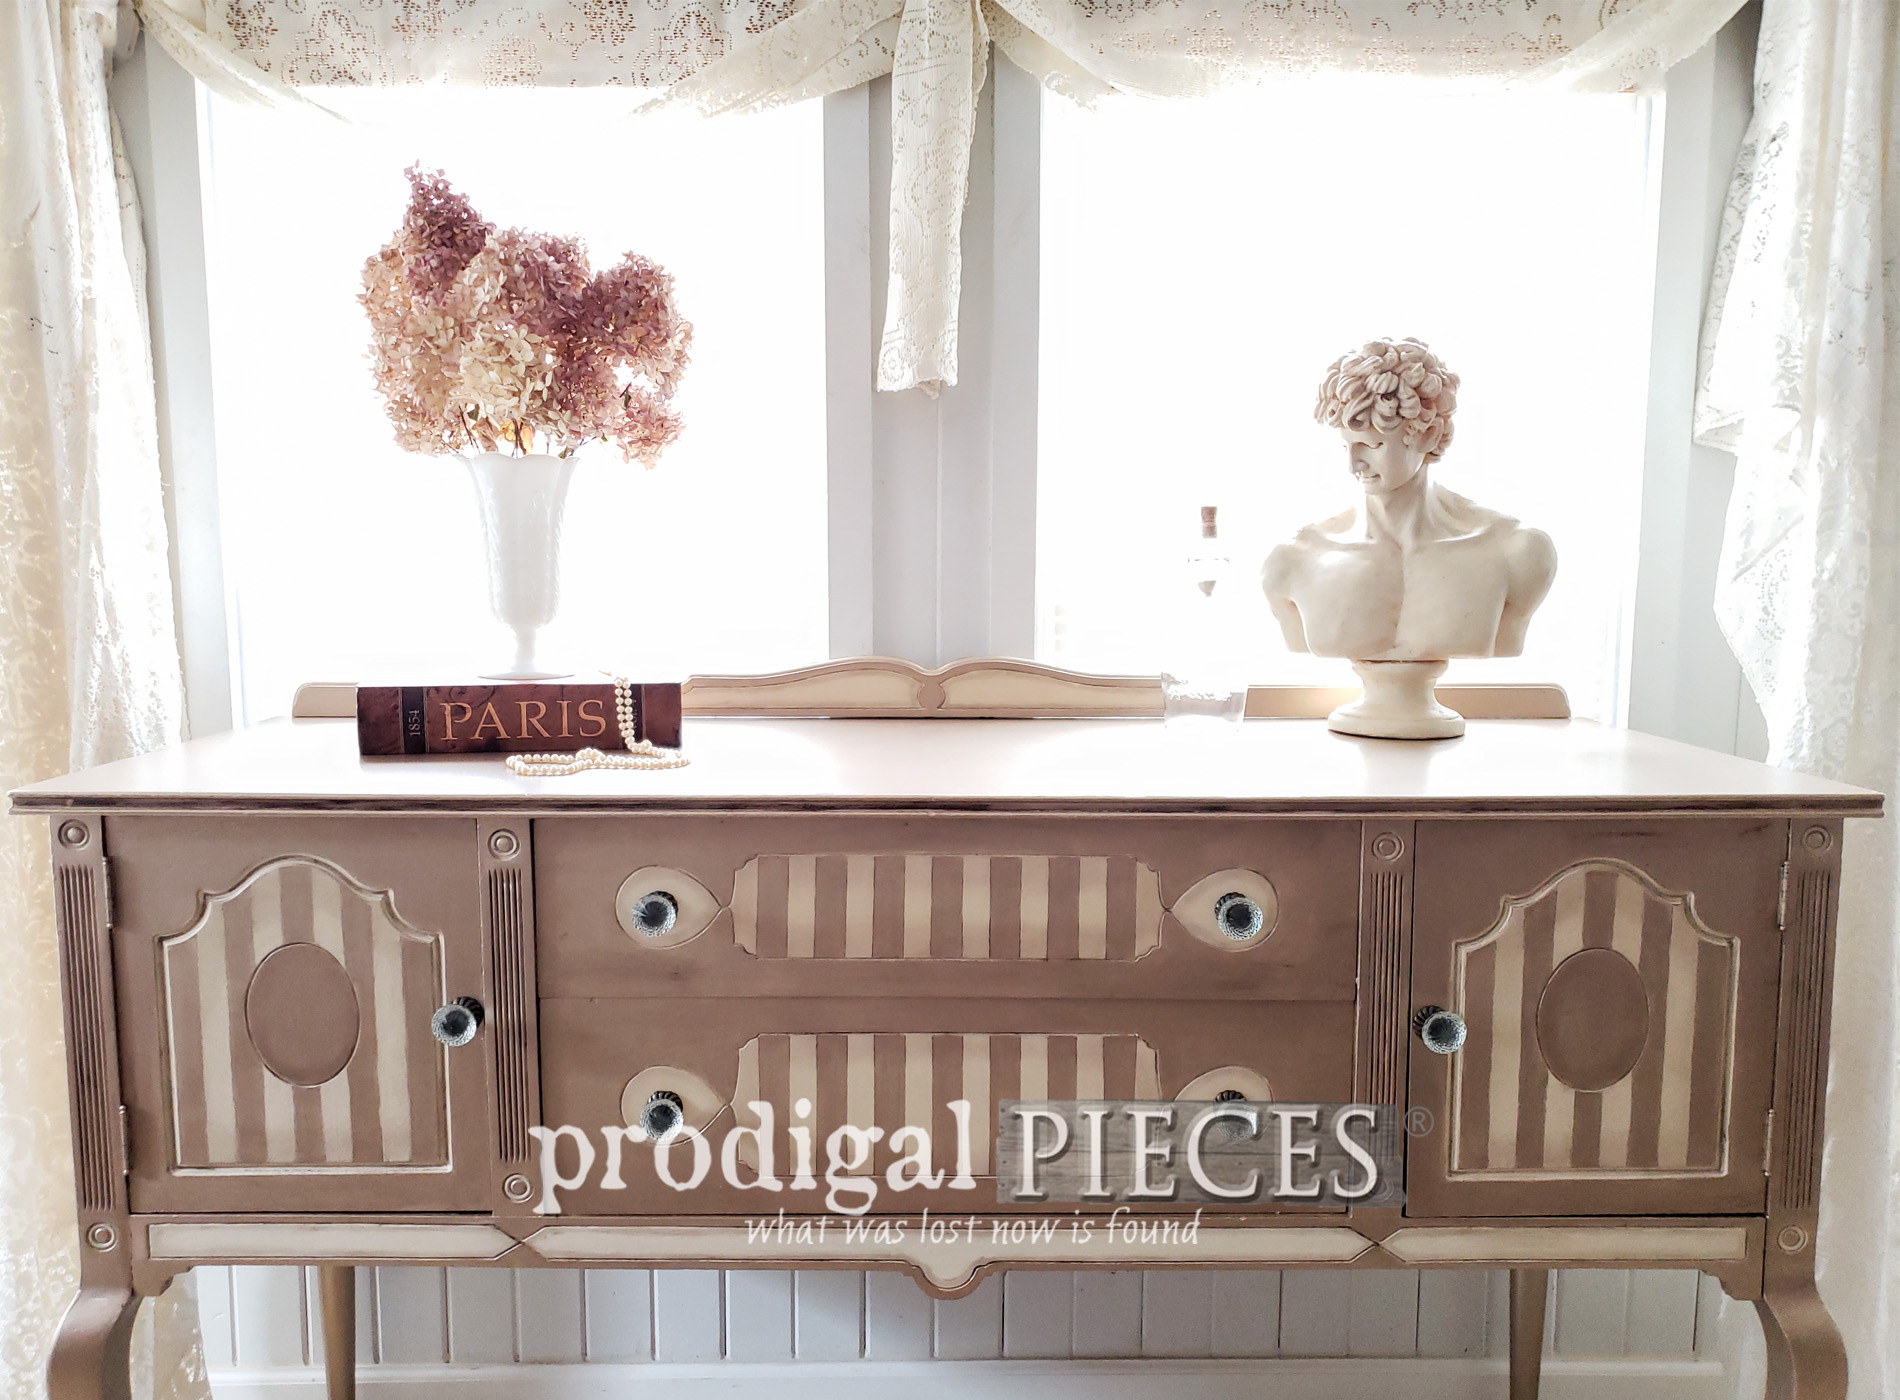 Featured Antique Buffet Gets Metallic Makeover by Larissa of Prodigal Pieces | Tutorial at prodigalpieces.com #prodigalpieces #diy #home #furniture #antique #homedecor #vintage